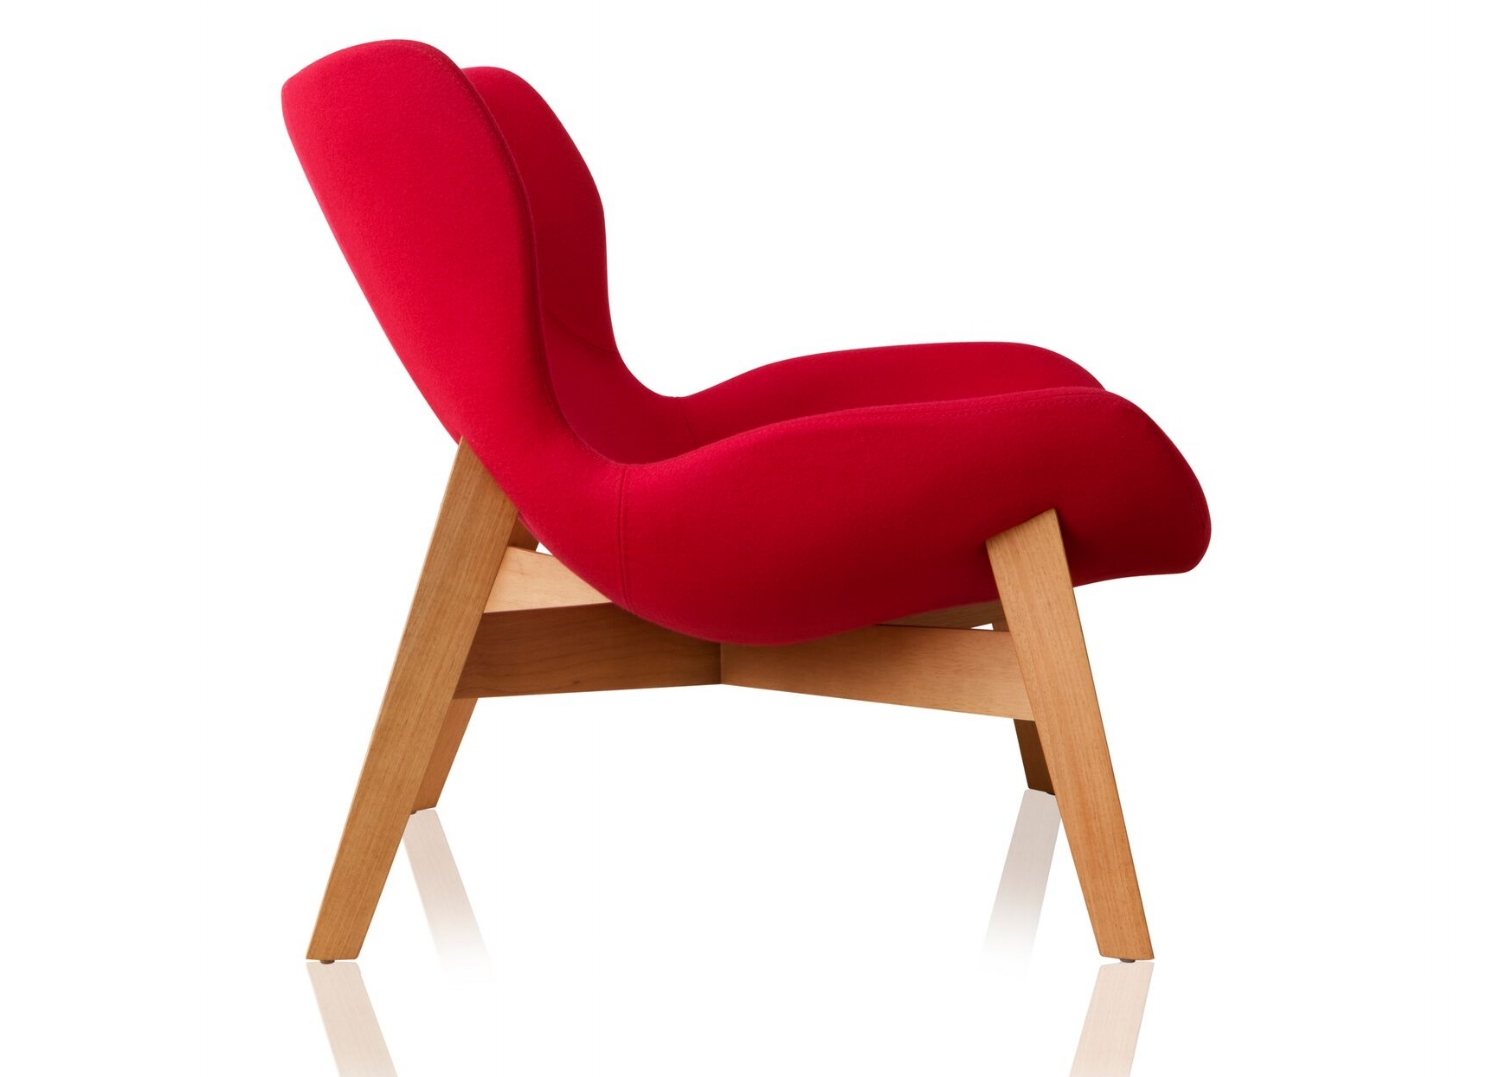 SJ_lounge_chair_daff_03.jpg